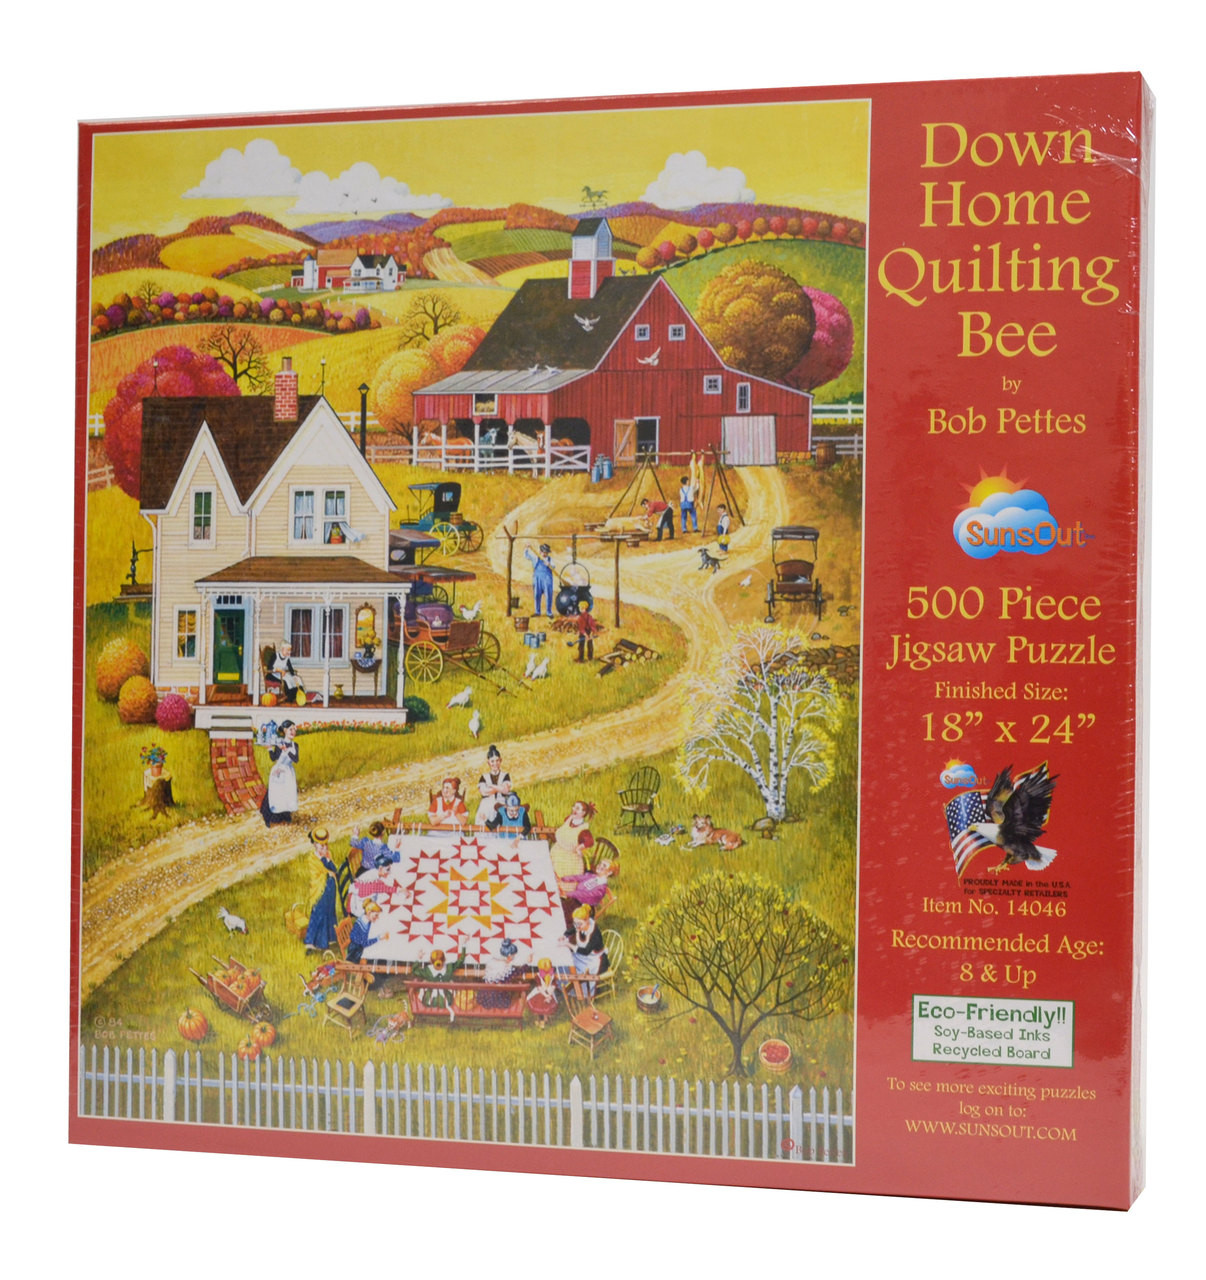 Down Home Quilting Bee Wholesale Puzzles